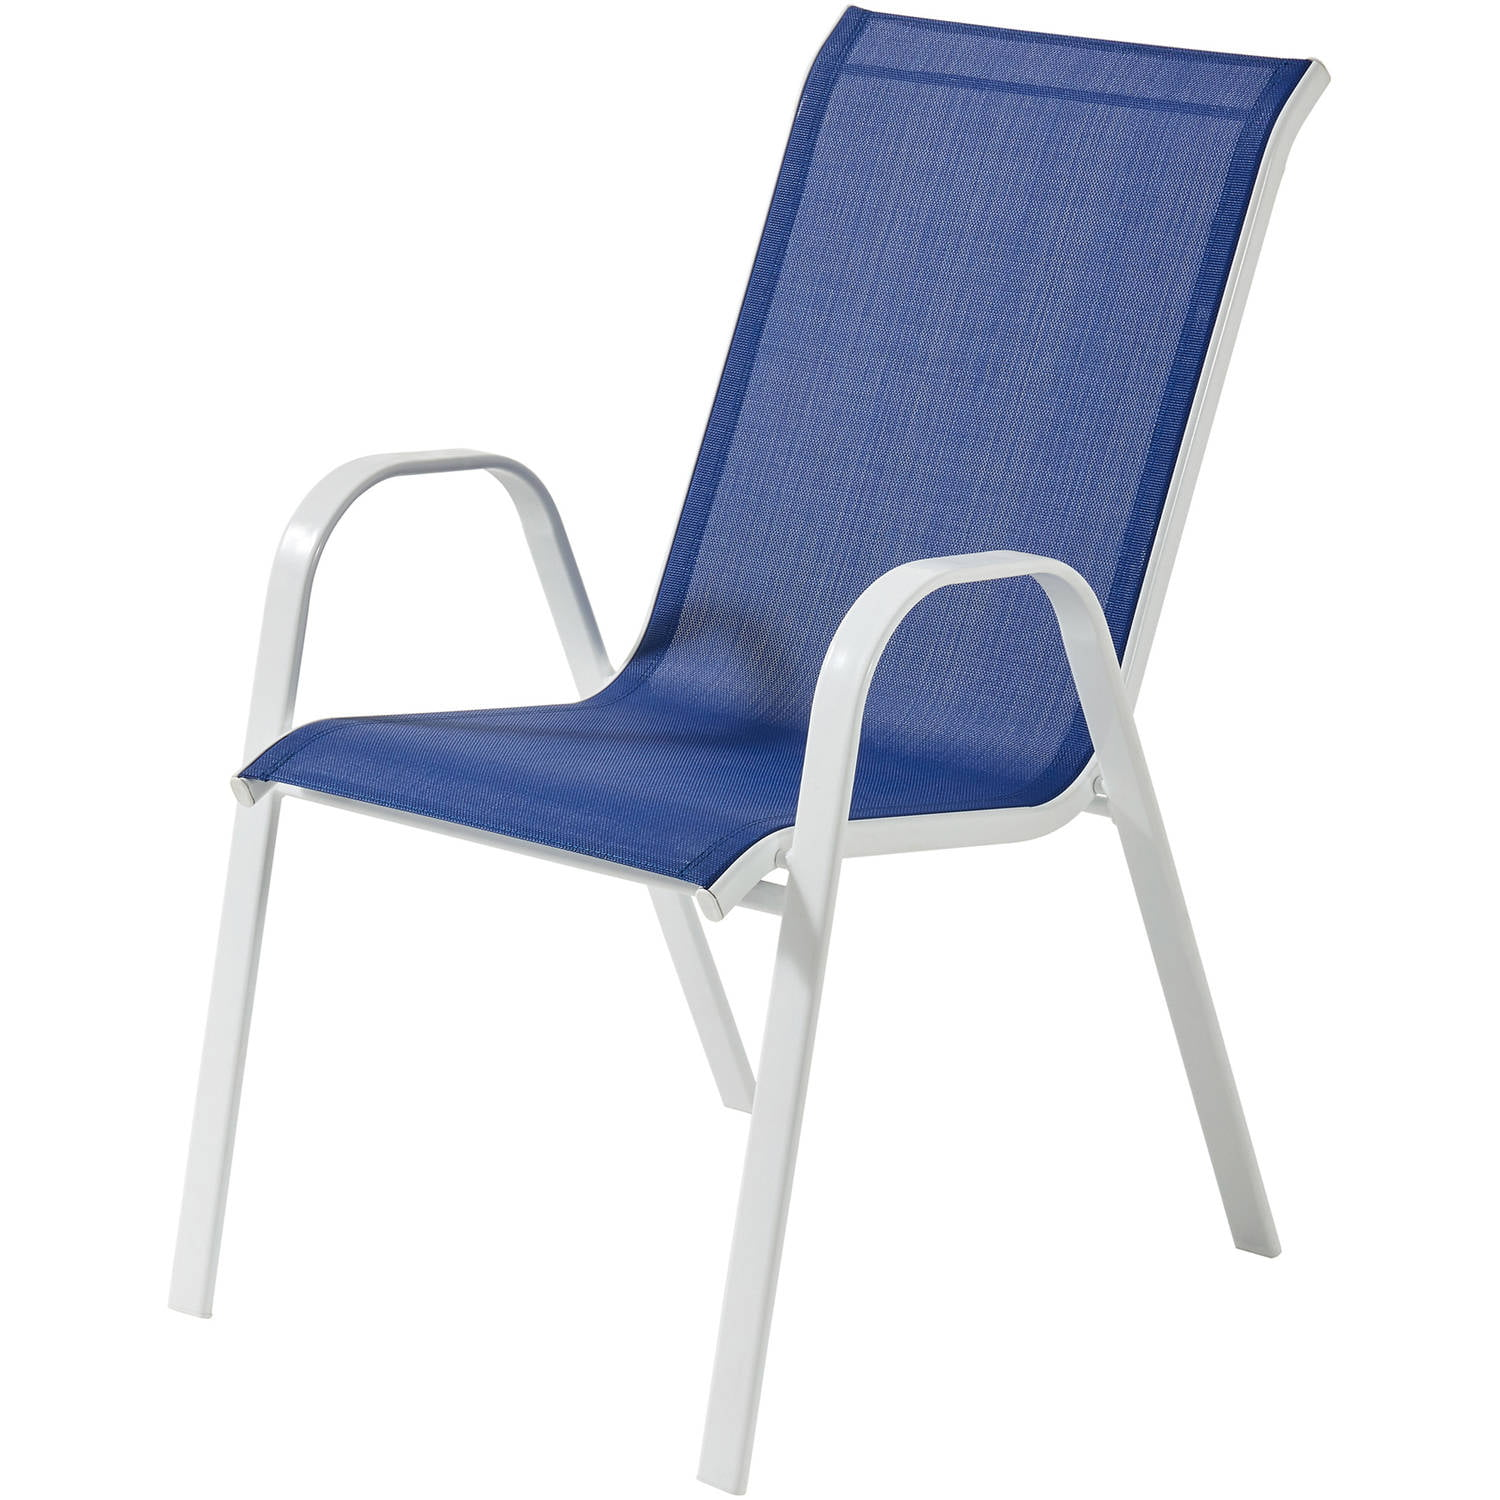 mainstays heri e park stacking sling chair royal blue